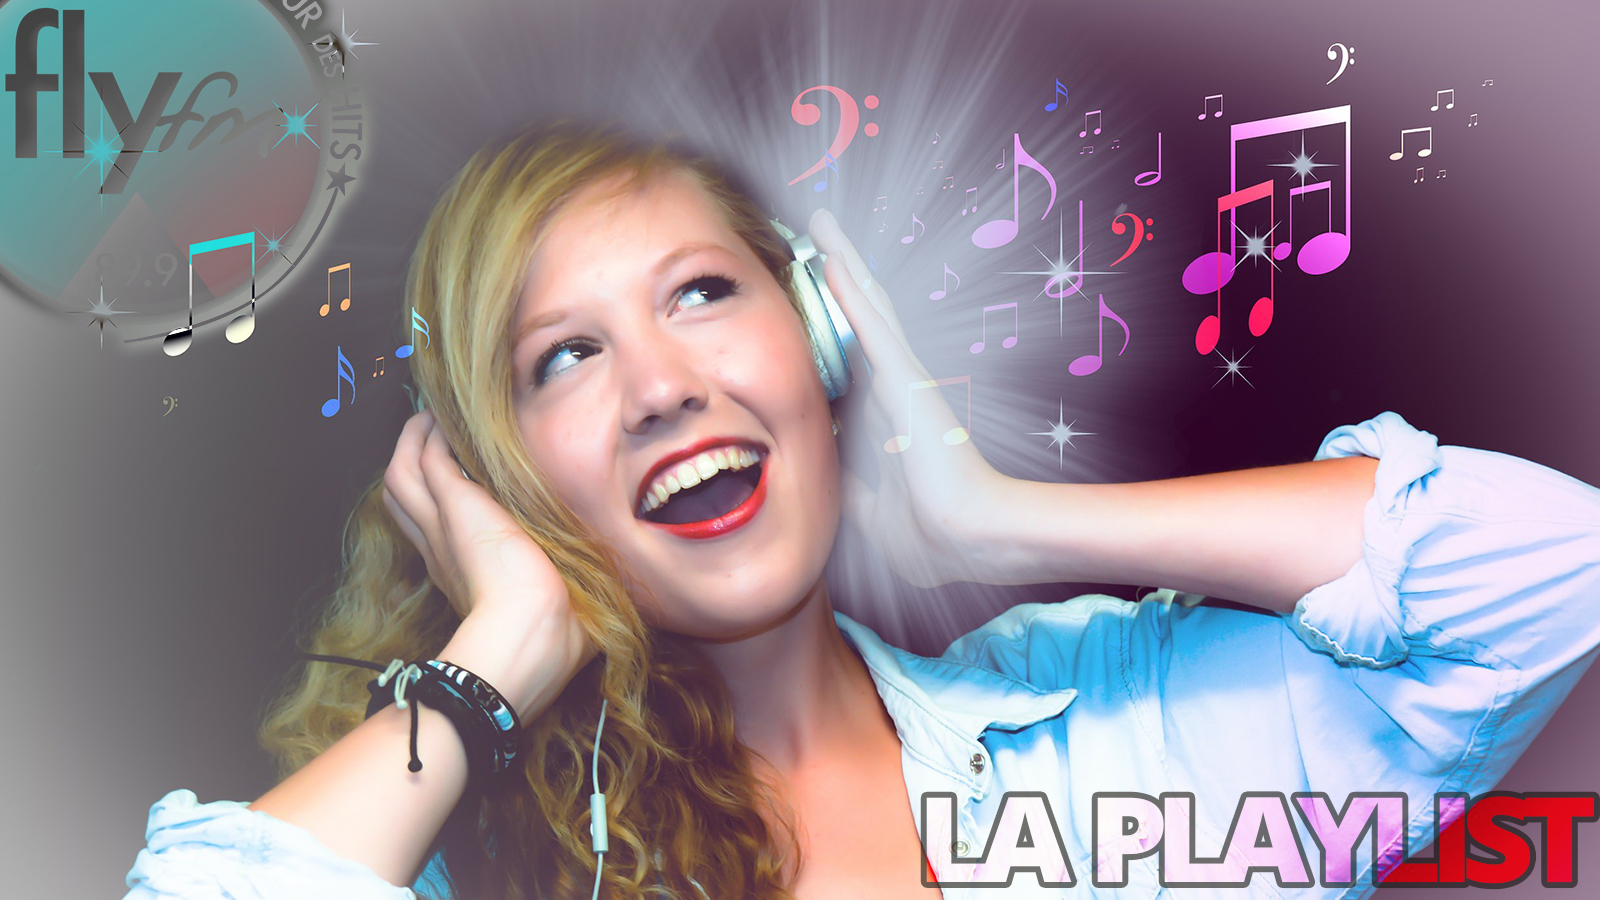 La PlayList de FlyFM